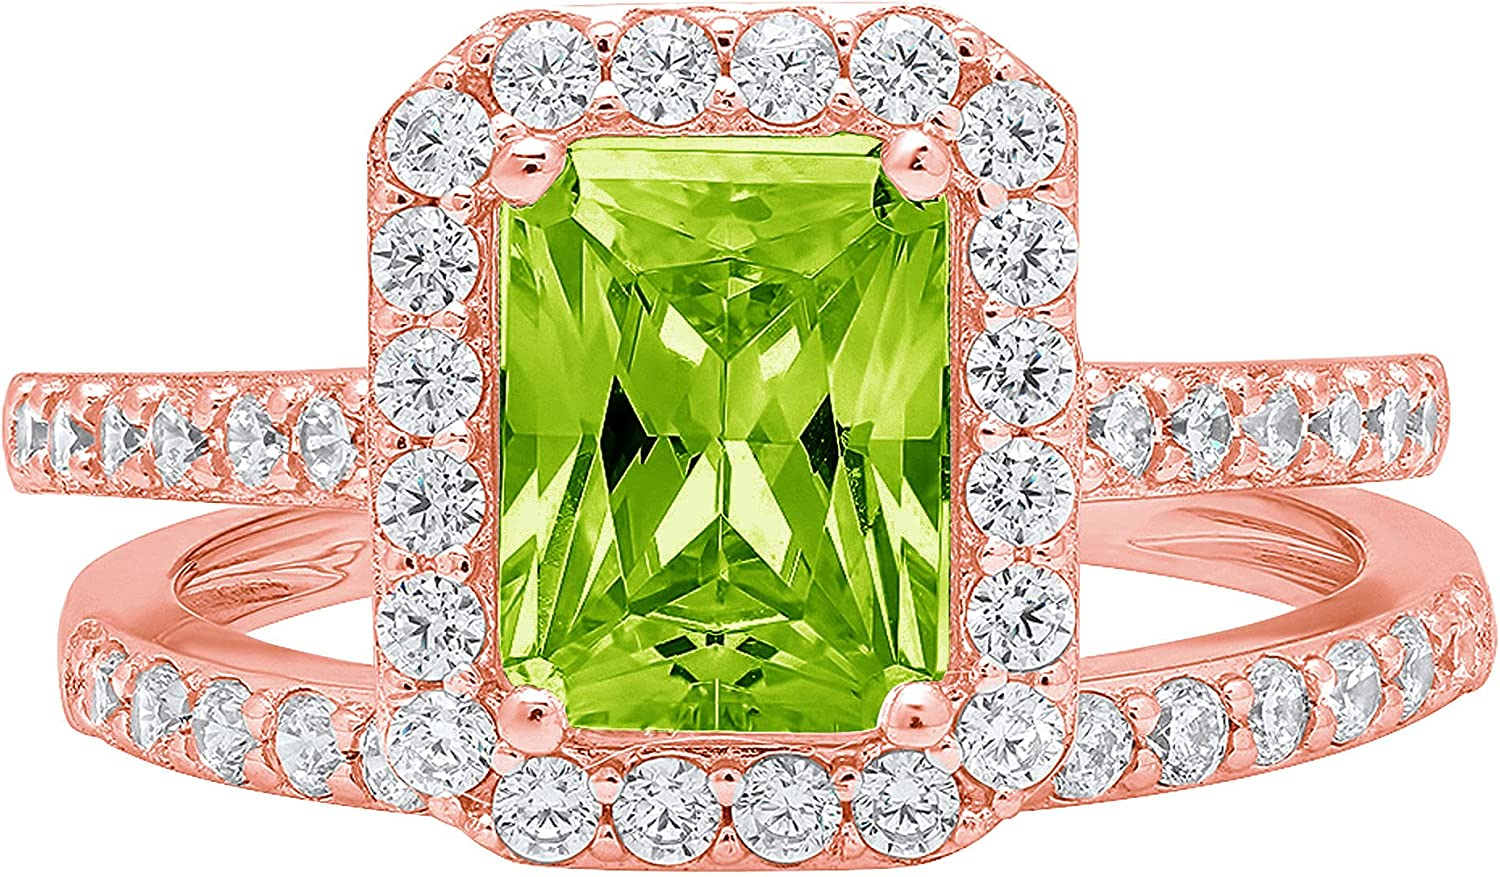 2.14ct Emerald Round Cut Pave Halo Solitaire with Accent VVS1 Ideal Flawless Genuine Natural Vivid Green Peridot Engagement Promise Designer Anniversary Wedding Bridal Ring band set 14k Rose Pink Gold